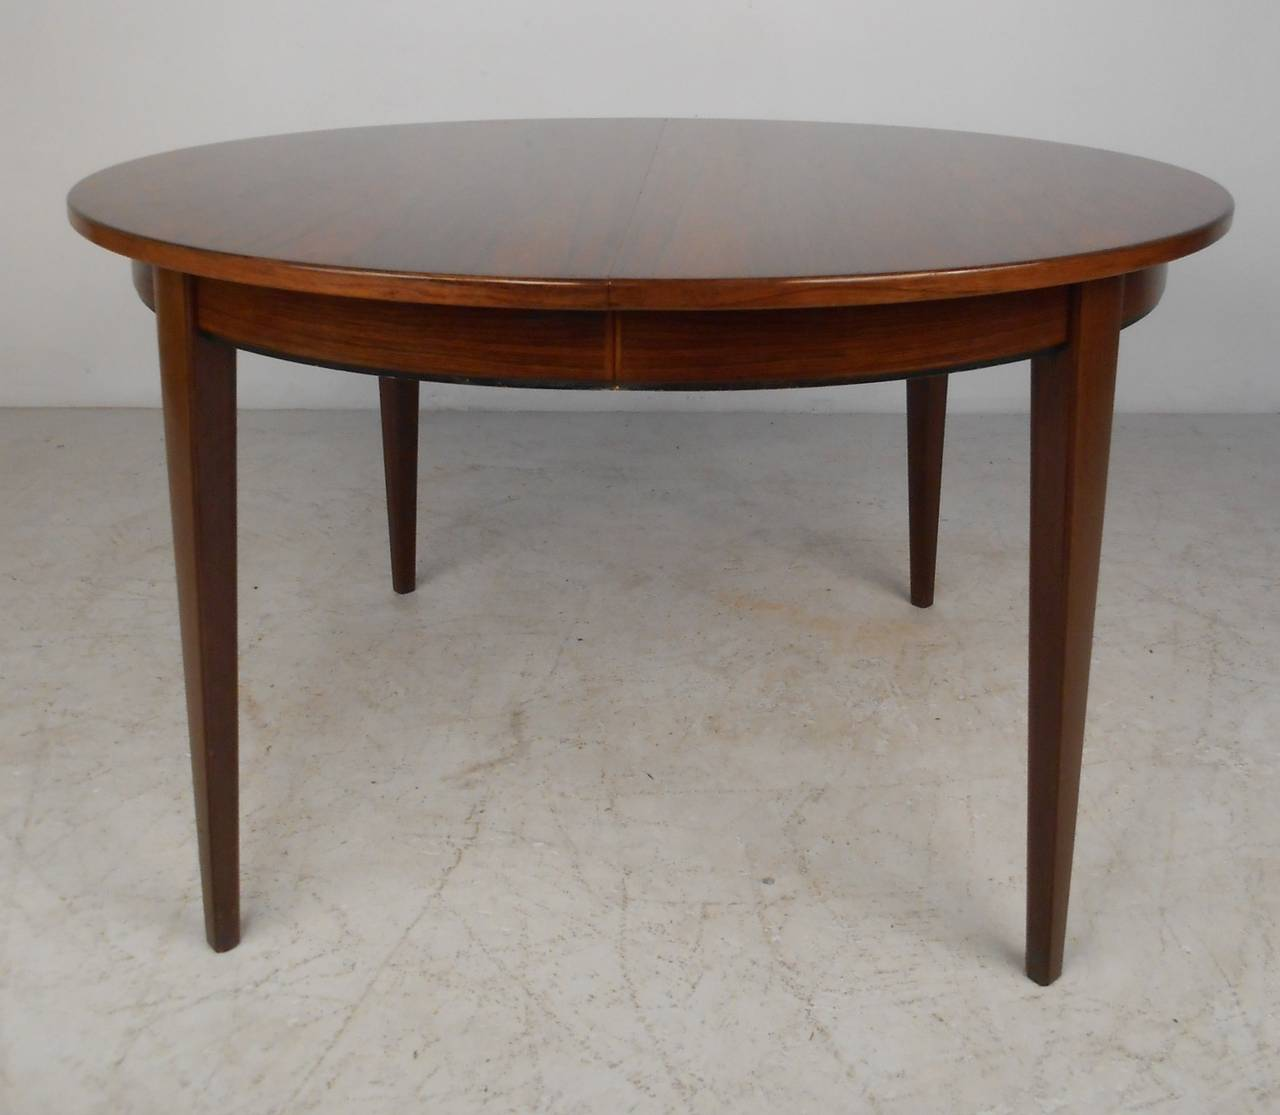 Omann Jun Rosewood Dining Table And Chairs C 1959 For